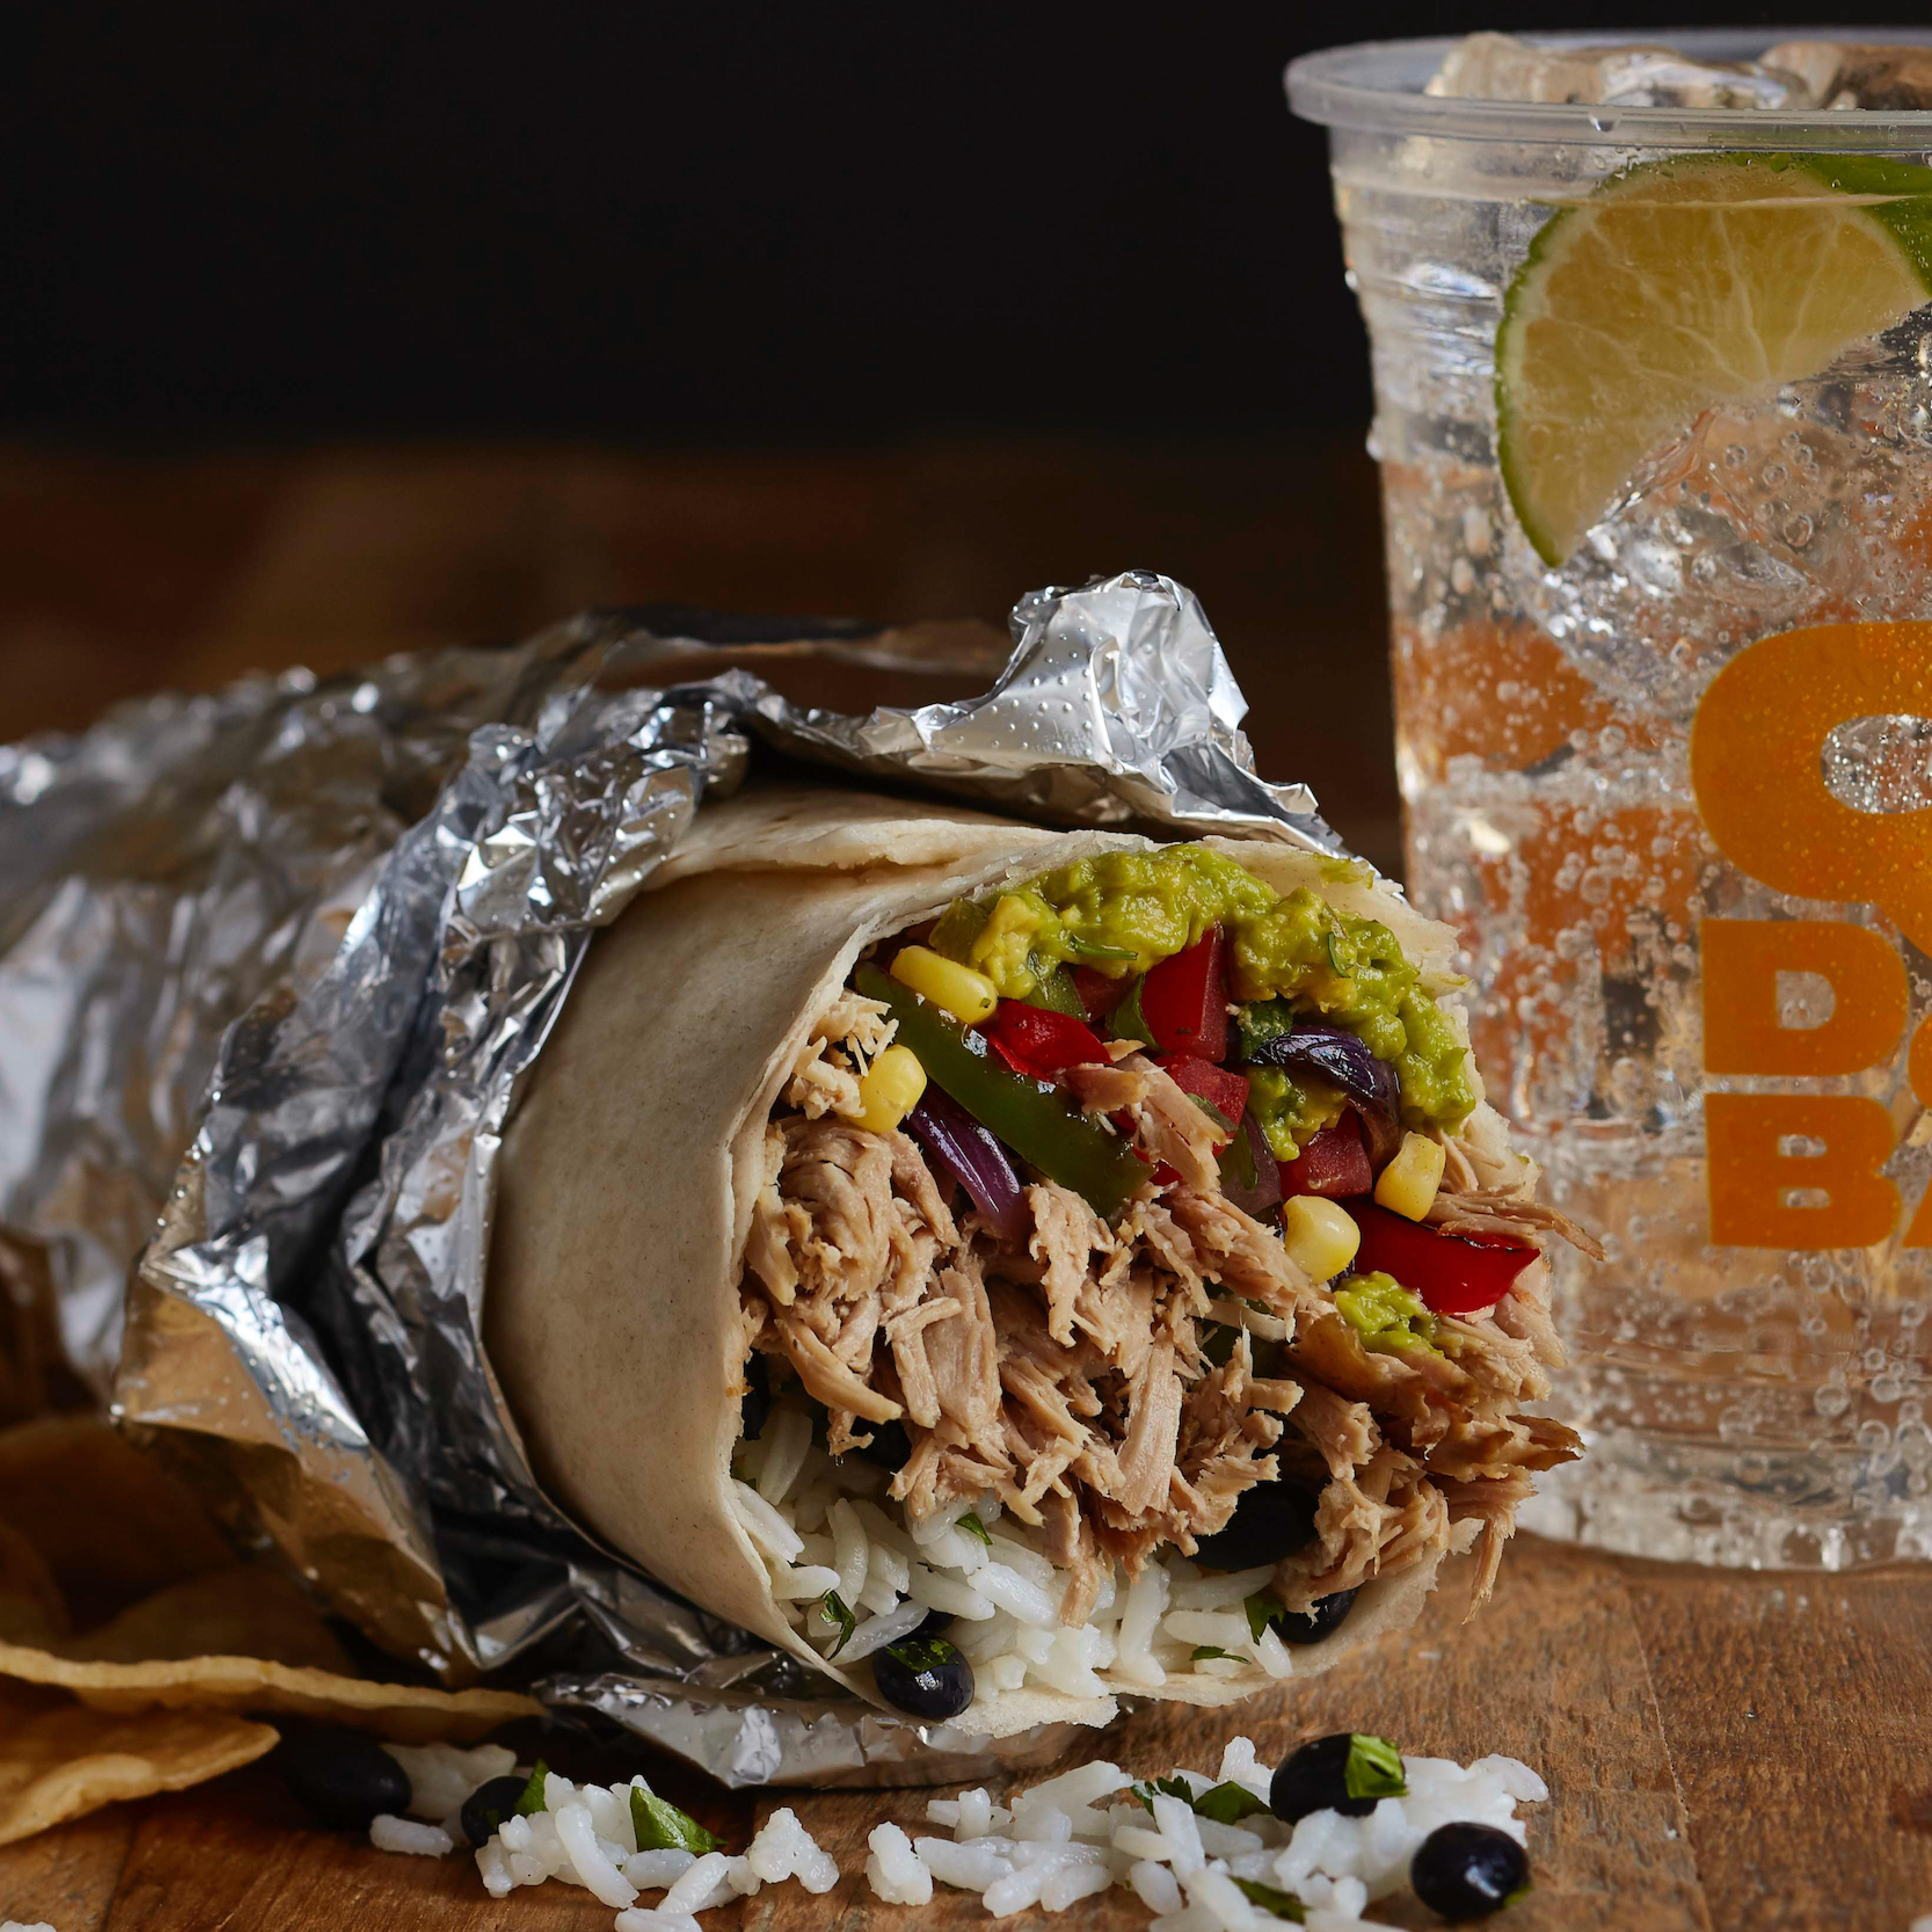 Fill your burrito with made-in-house ingredients like pulled pork, fajita veggies and hand-smashed guac.